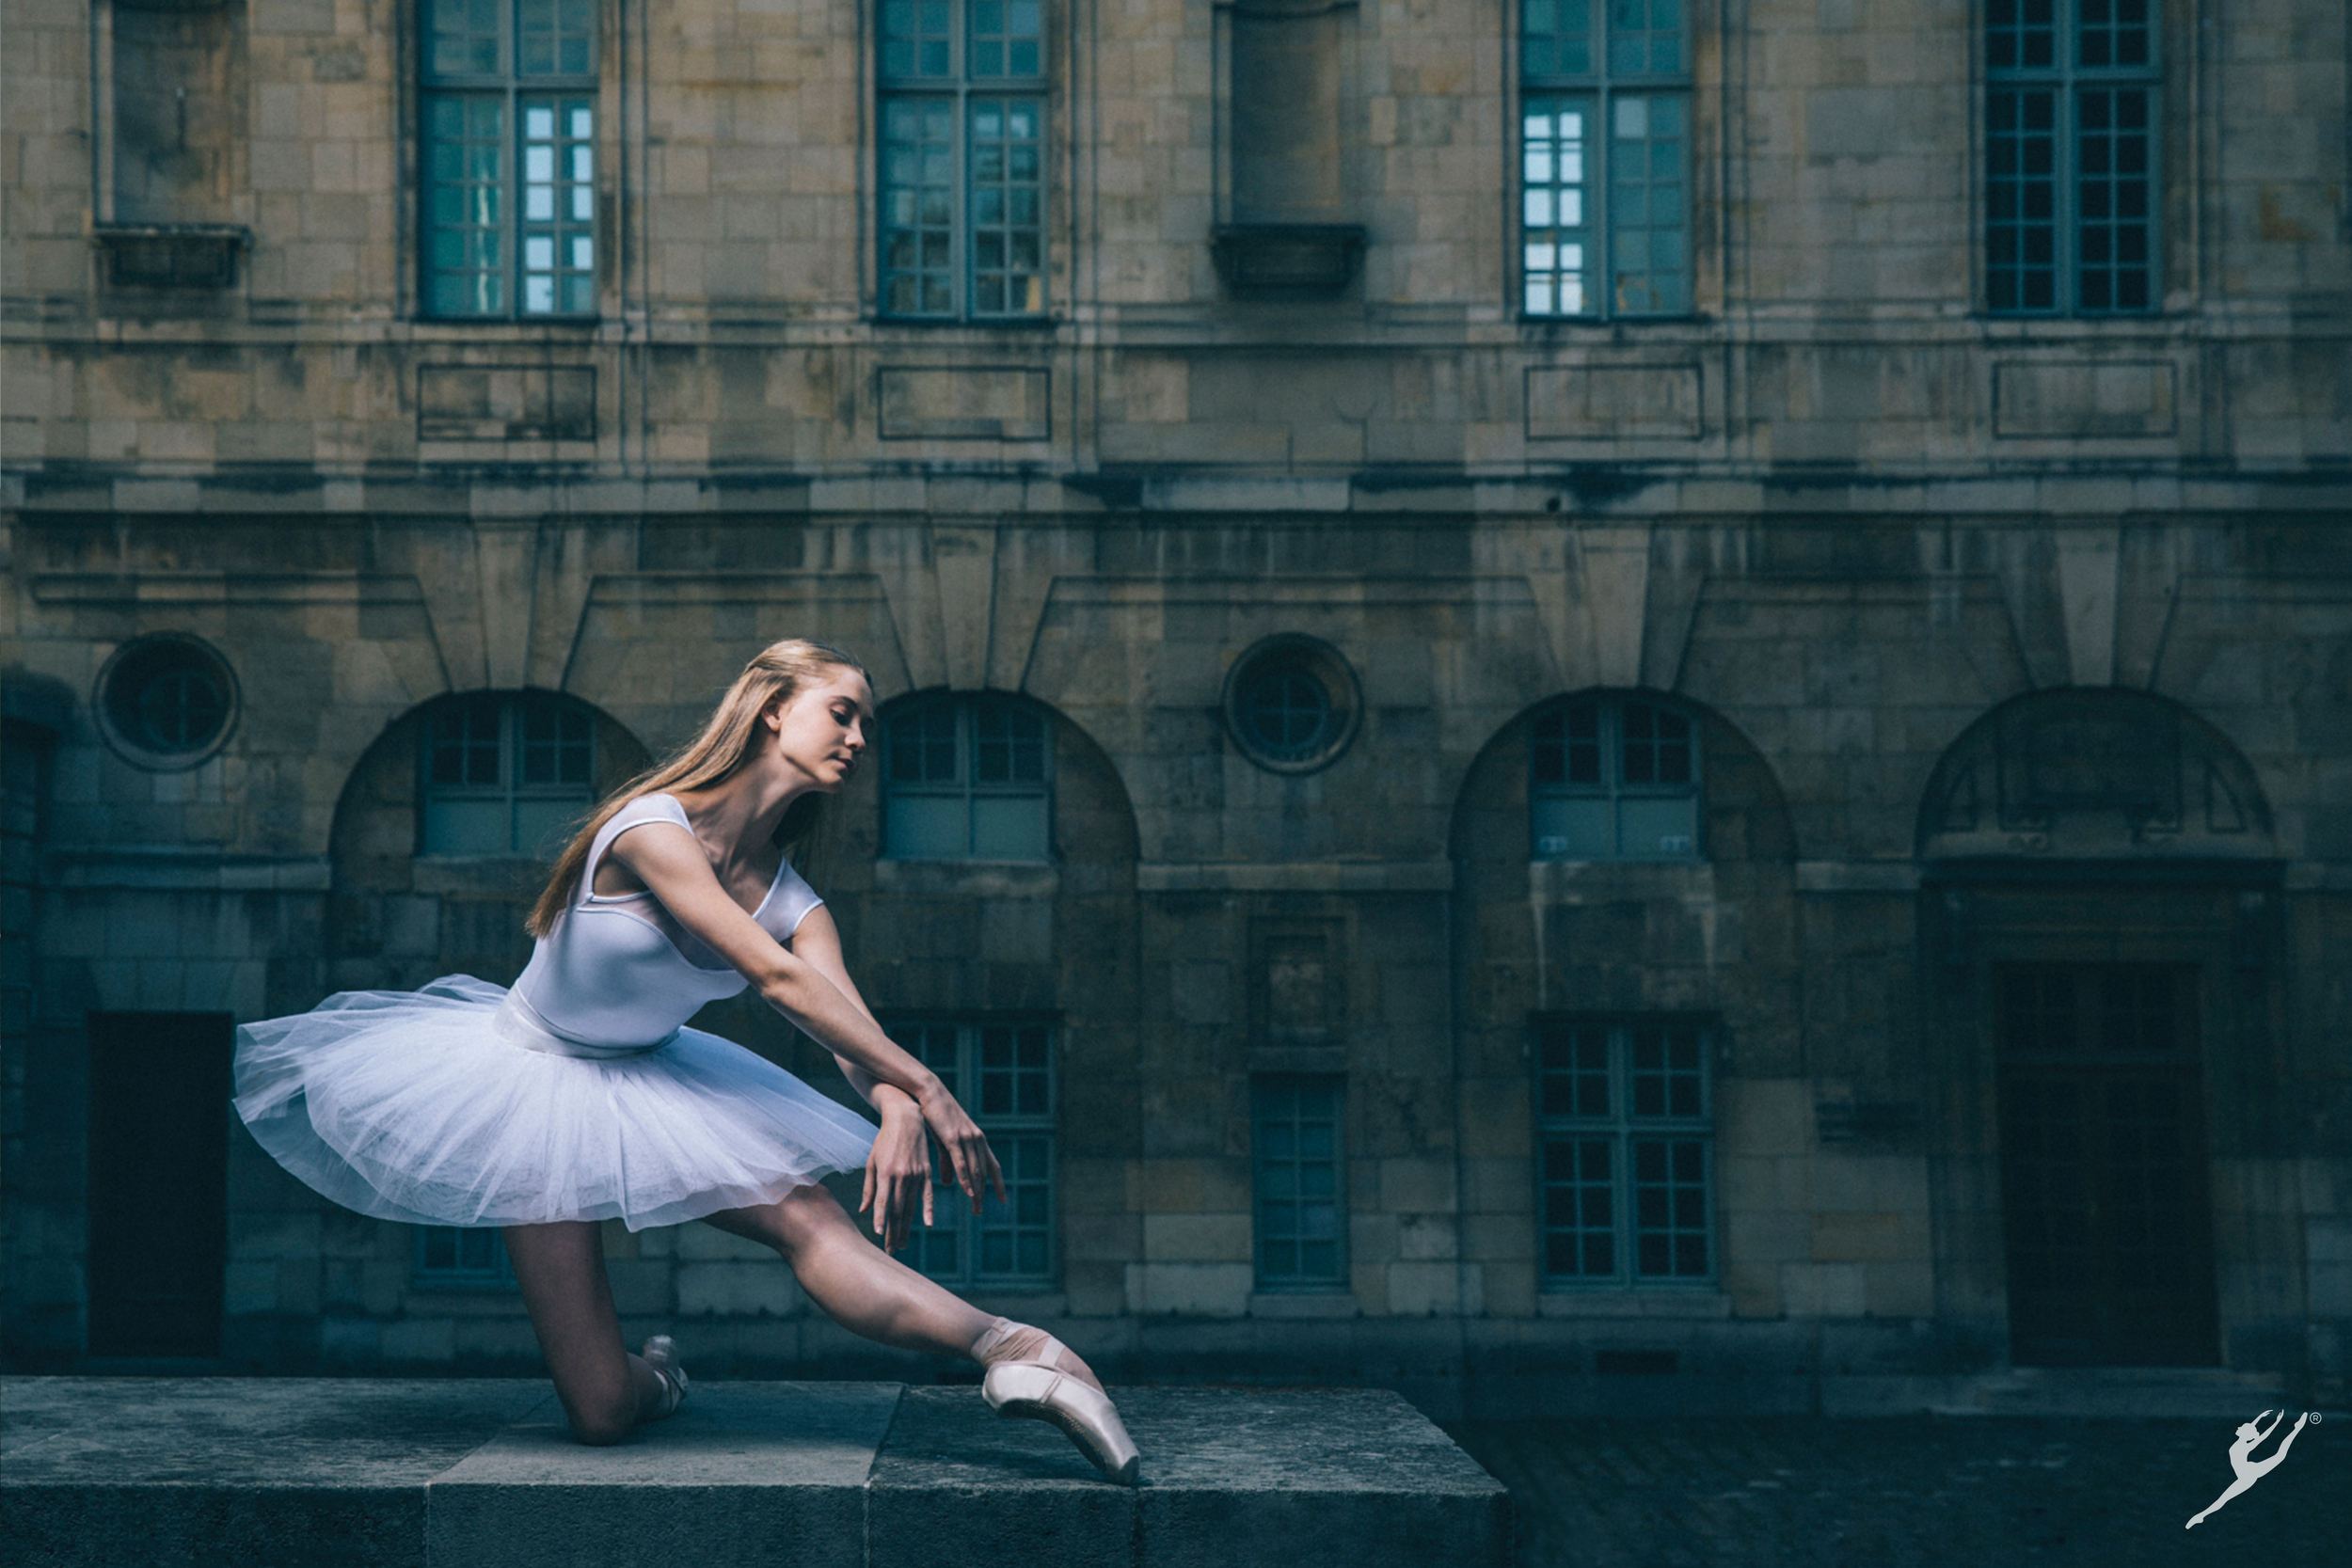 Bianca Scudamore in Paris, France for Energetiks. Photographer: Little Shiao